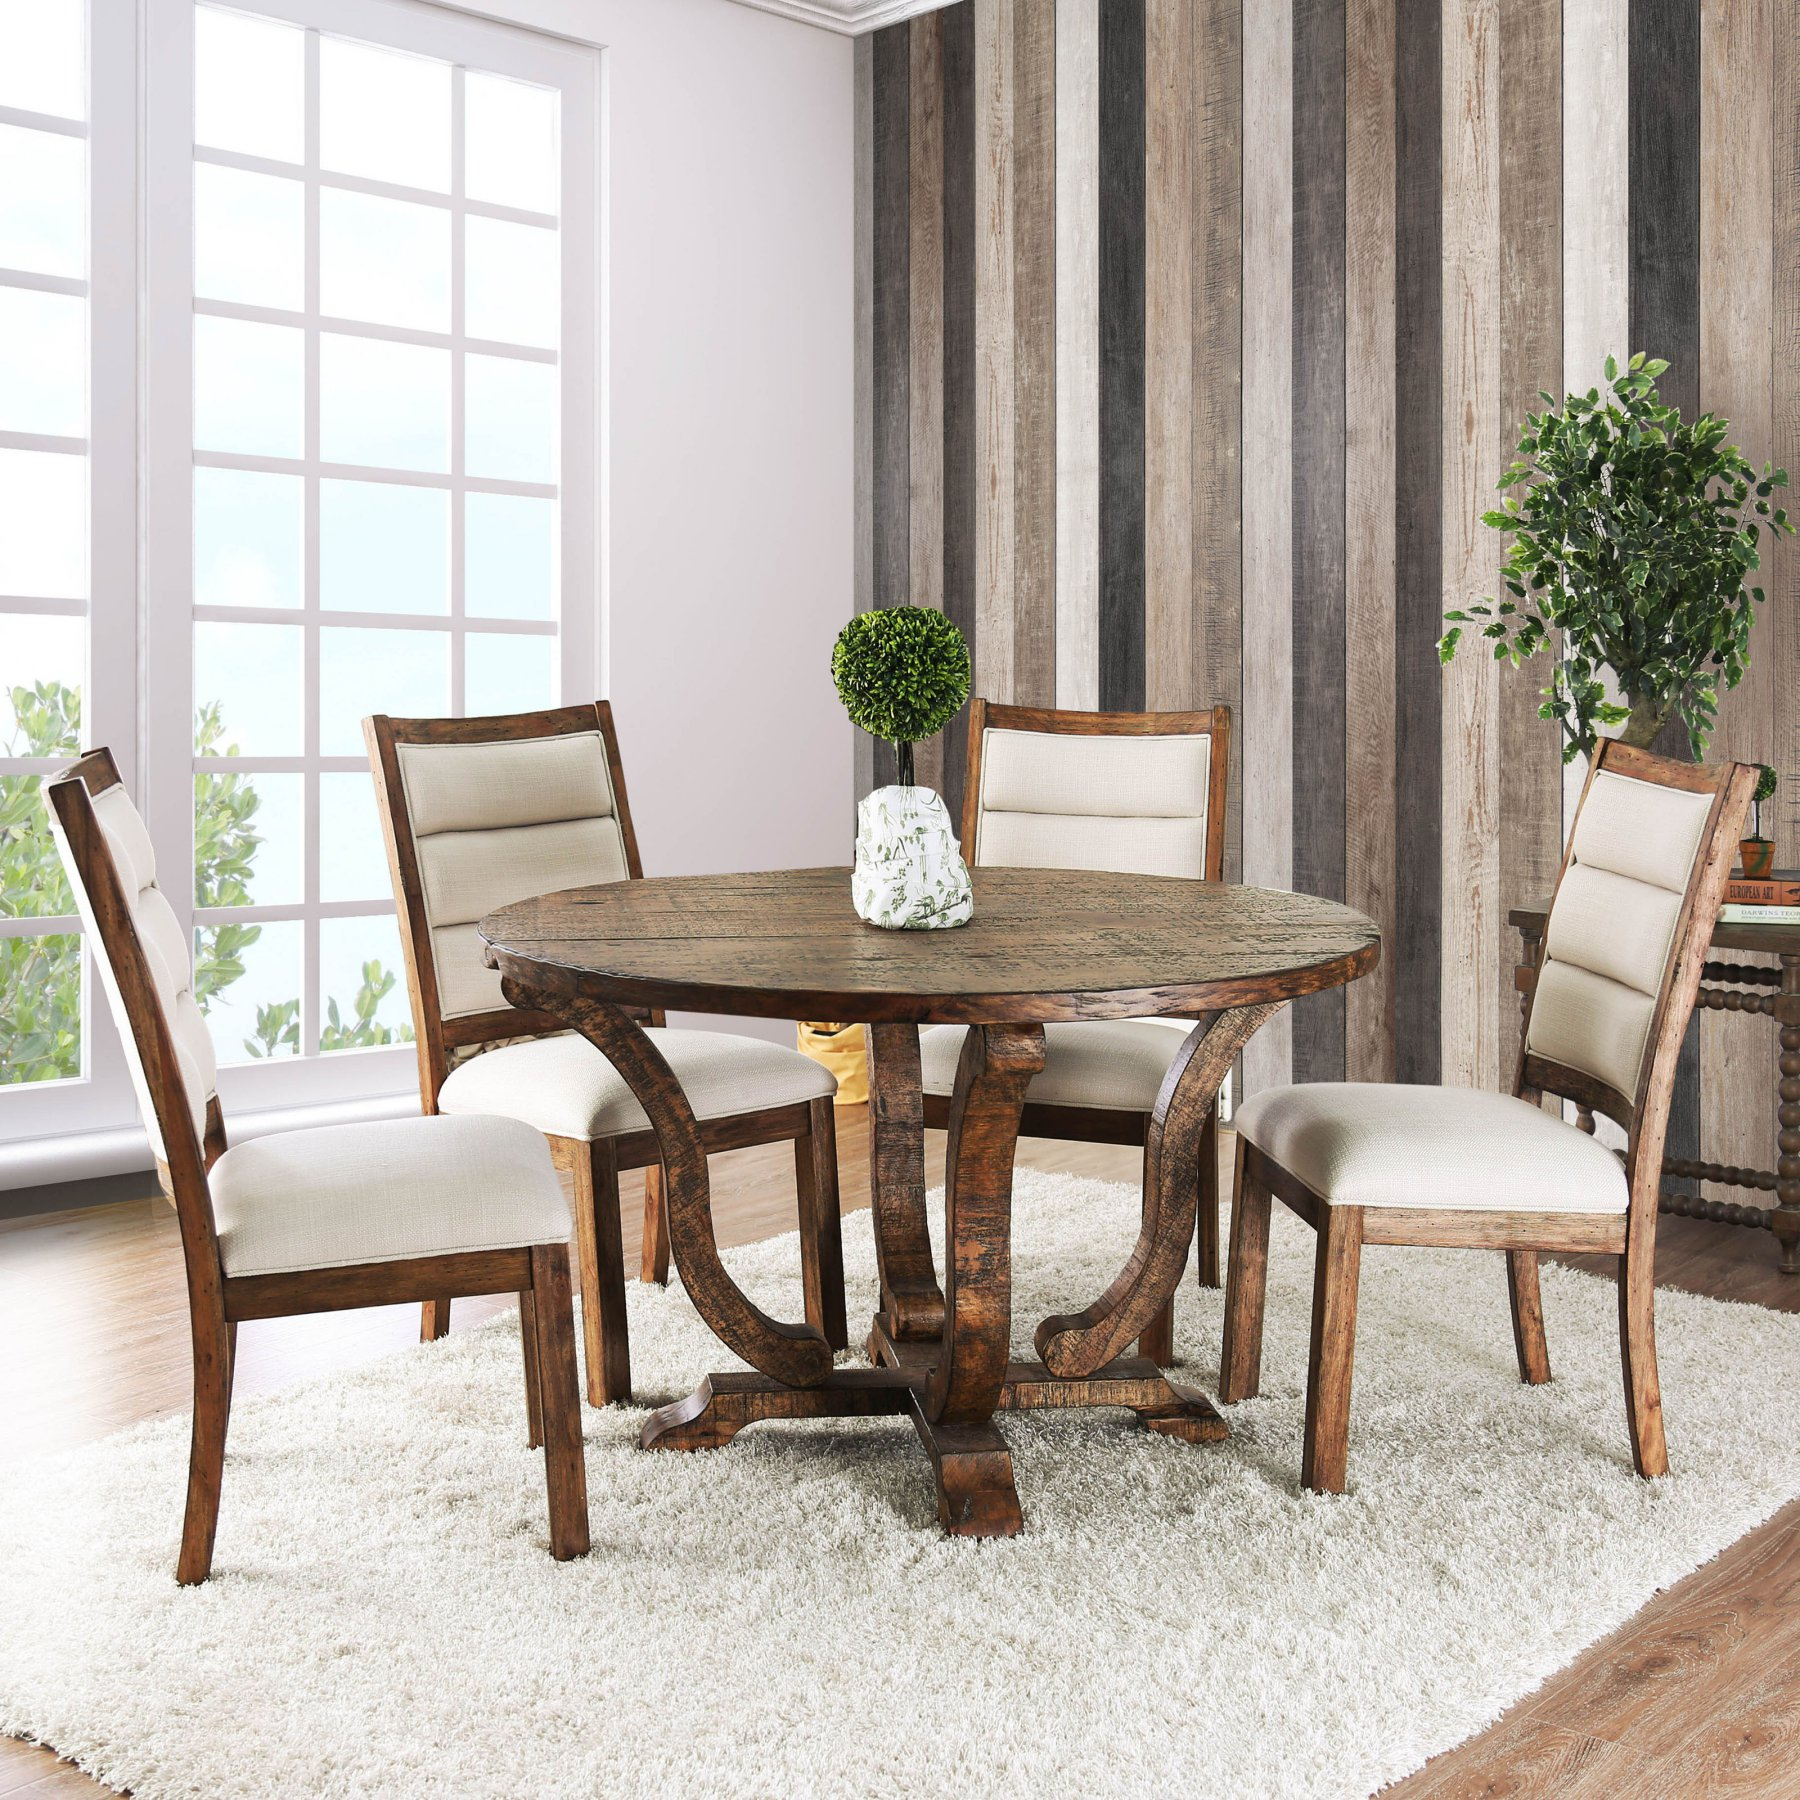 Furniture Of America Wenslow 5 Piece Rustic Round Dining Table